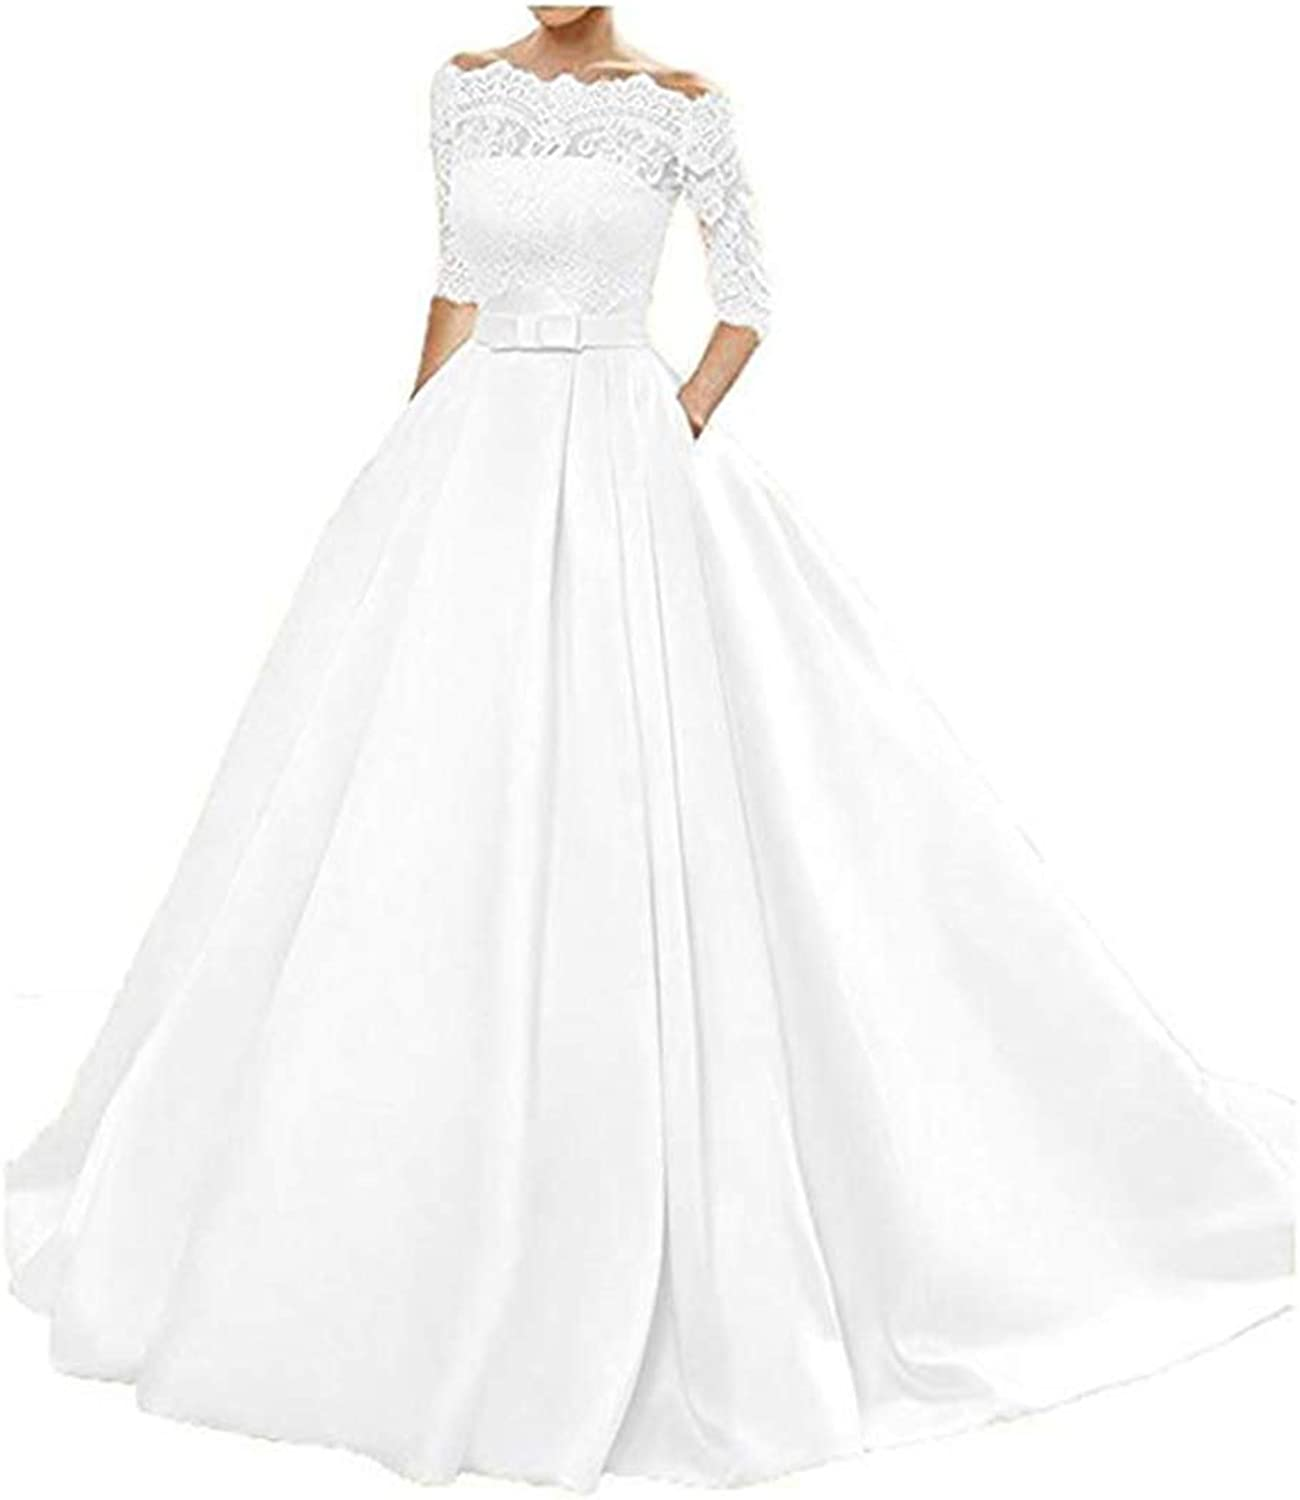 Olise bridal Glamgoldus Women's Lace Wedding Dresses 3 4 Sleeves White Sweep Train Satin Wedding Bridal Gowns Plus Size